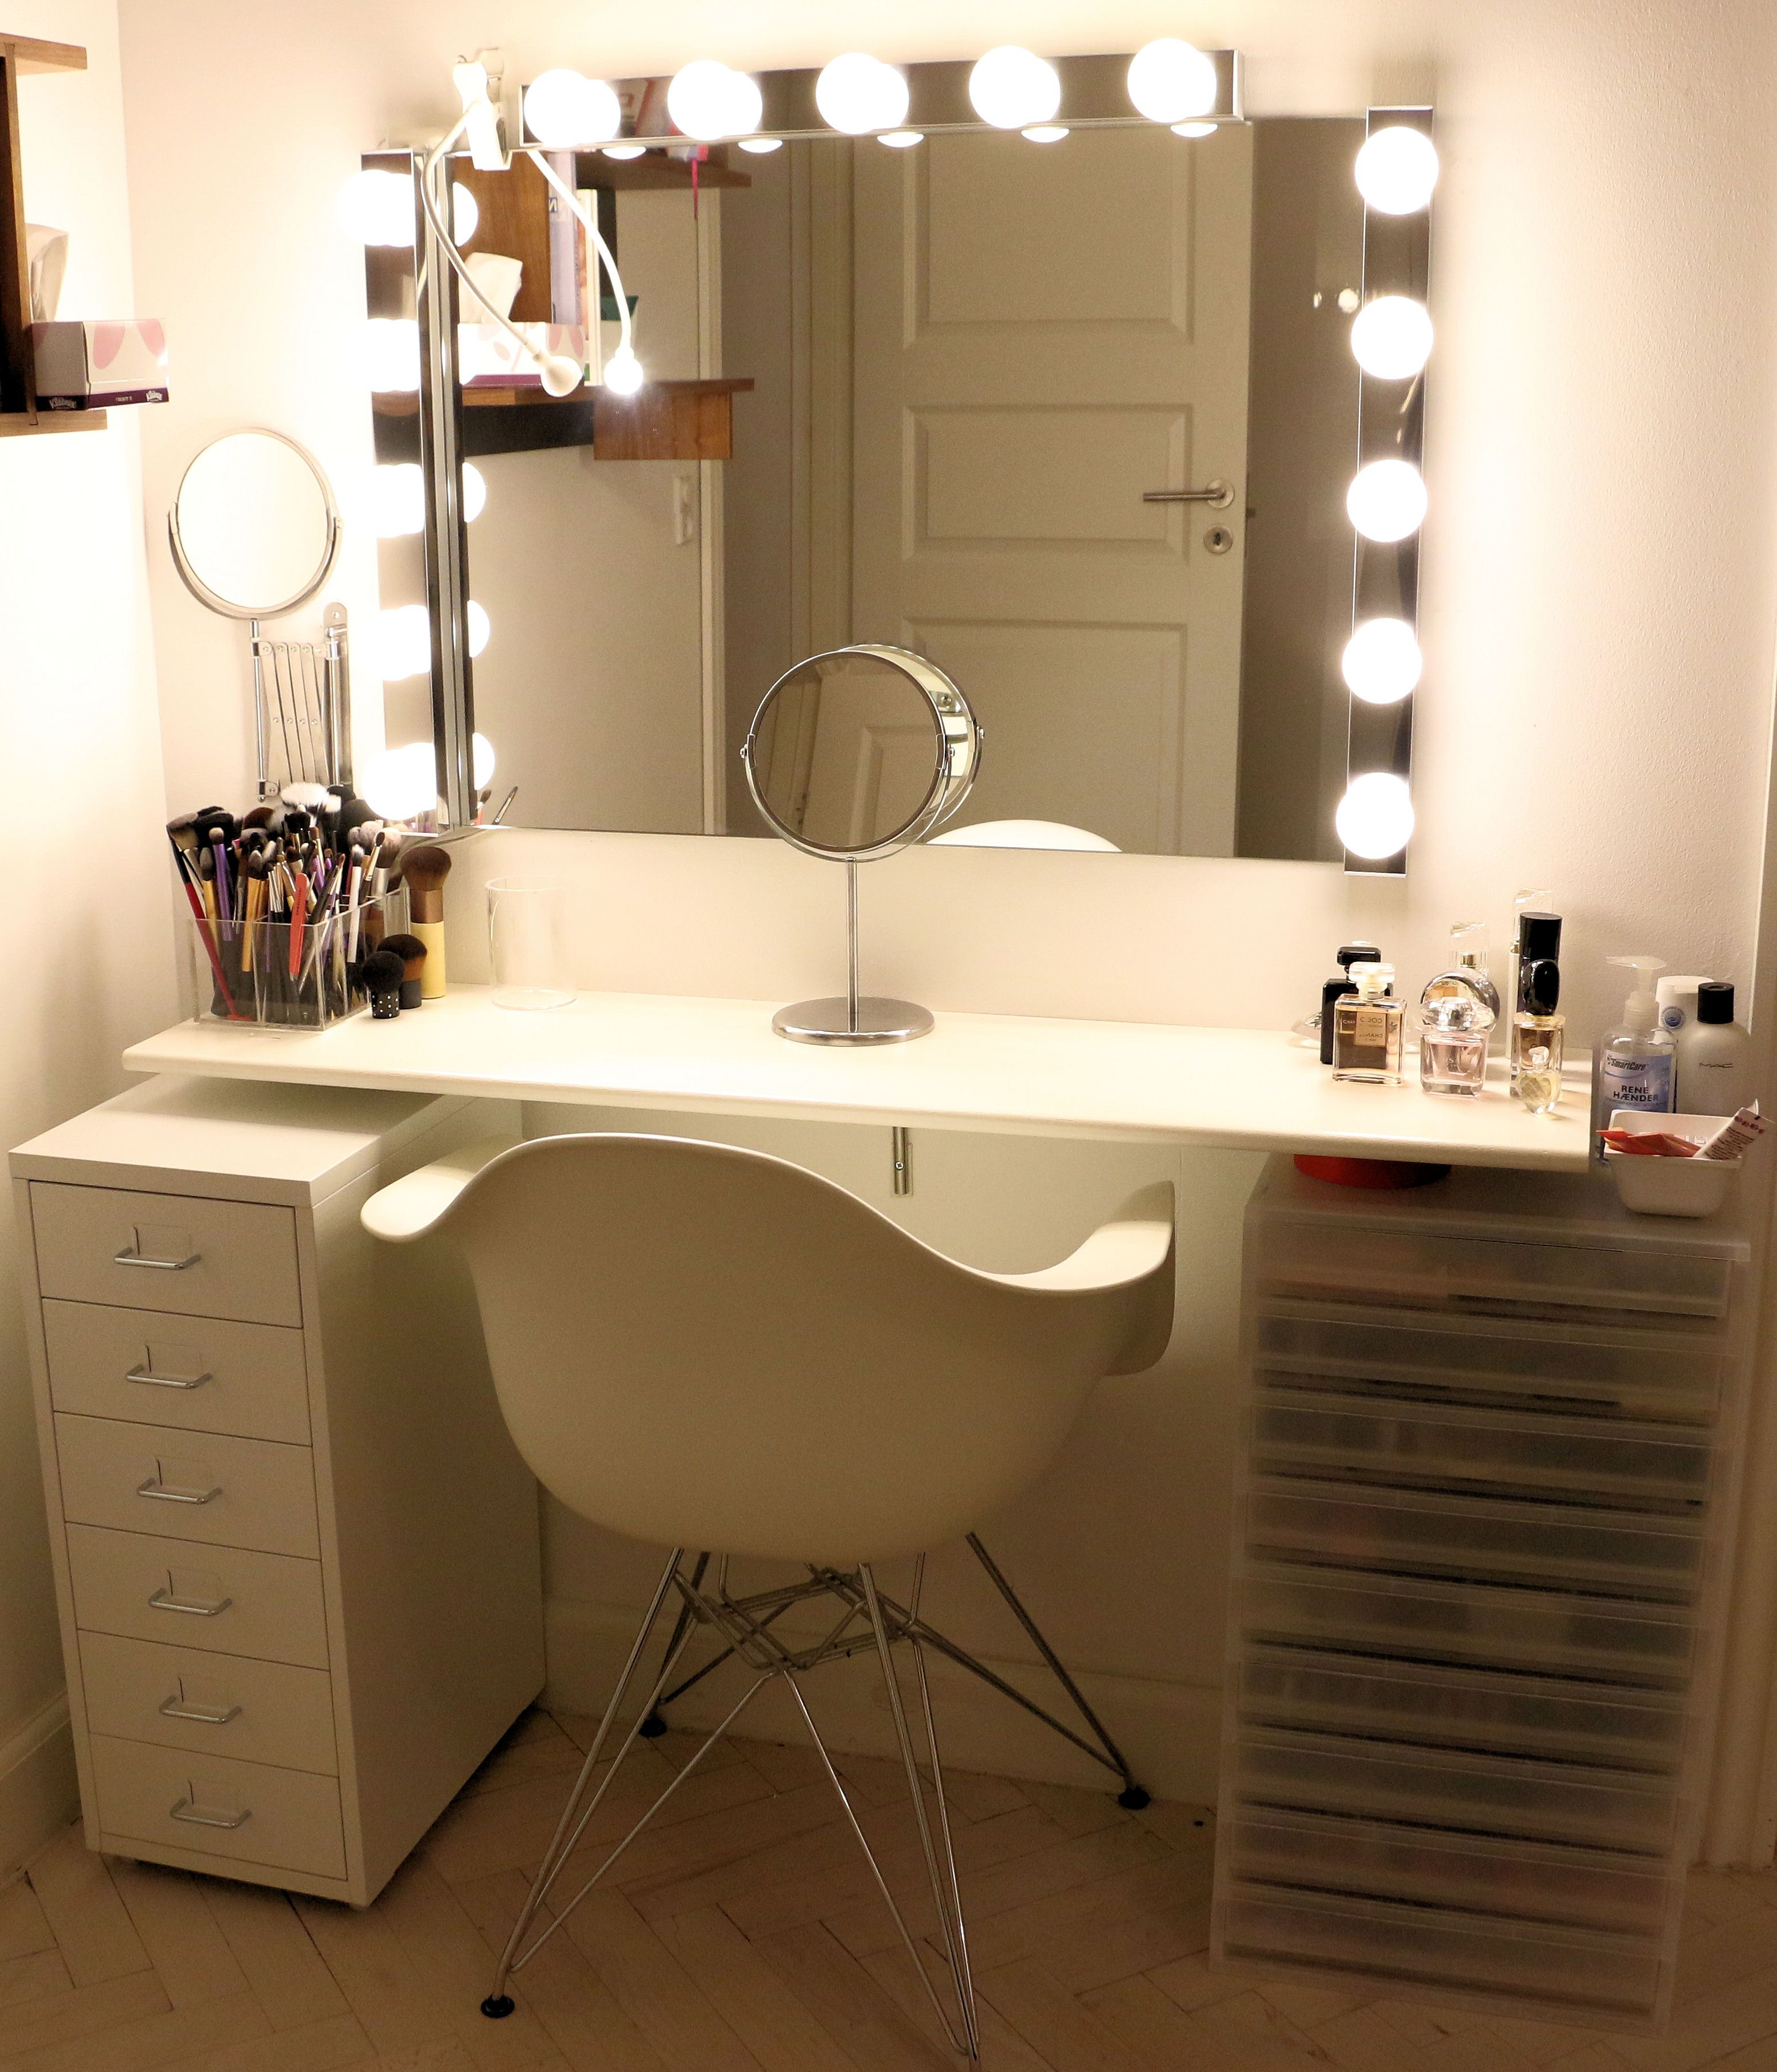 Vanity dressing table makeup station achtungbeauty vanity dressing table makeup station achtungbeauty geotapseo Choice Image